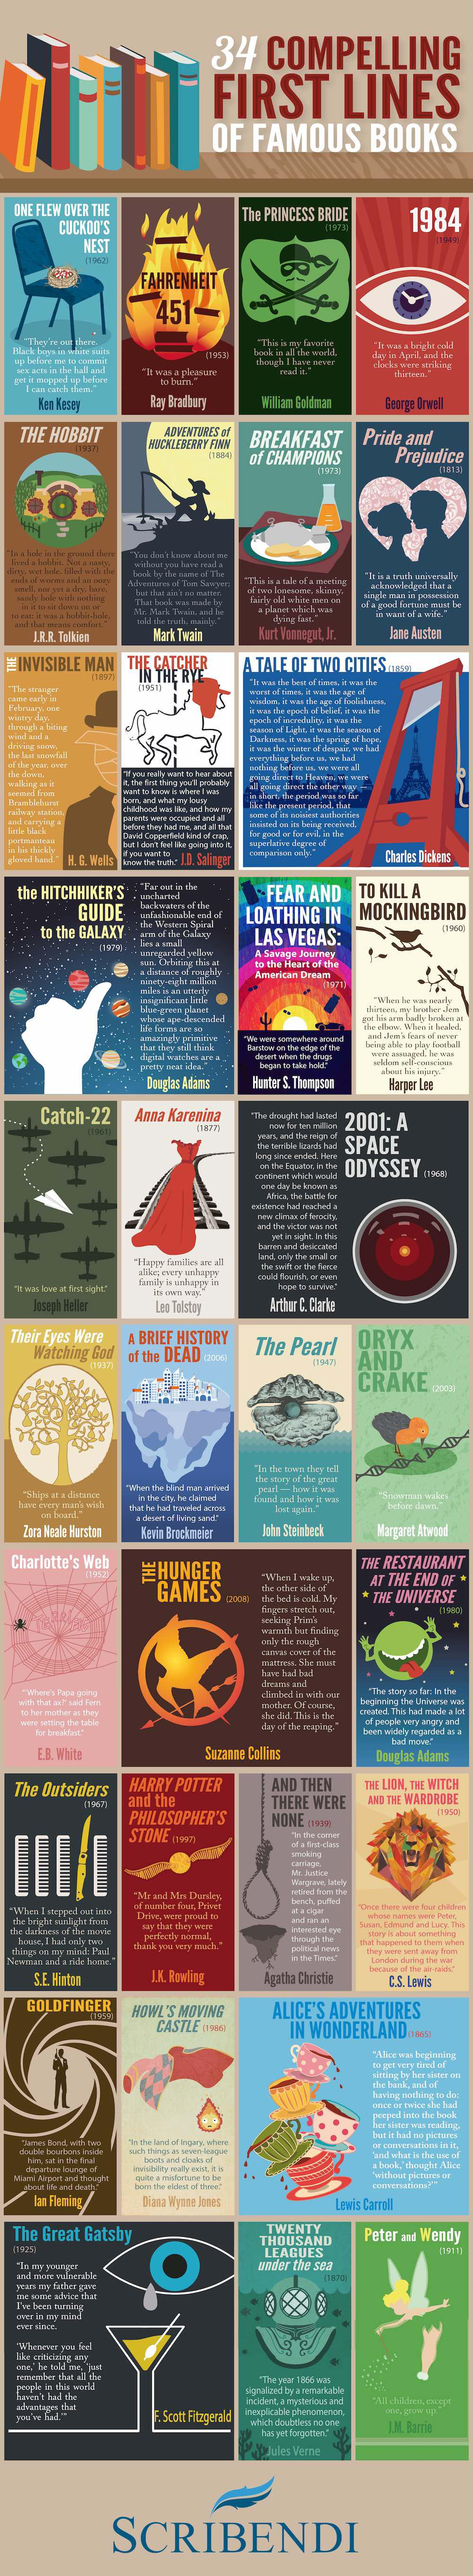 The first lines of famous books infographic